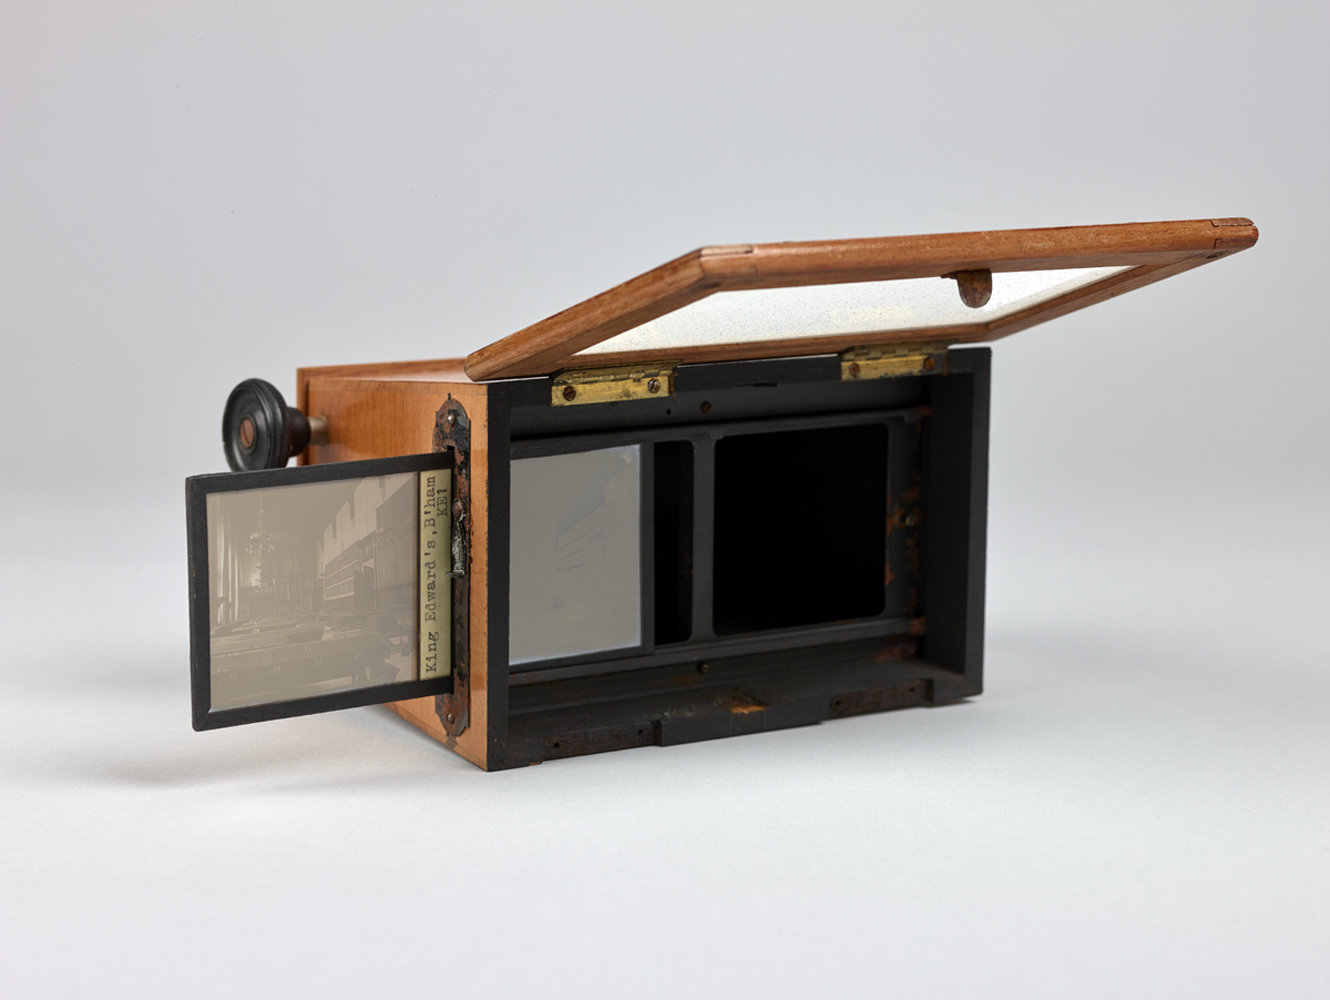 http://www.davidrowan.org/files/gimgs/54_ke-archive-stereoscope-viewer-two-19.jpg